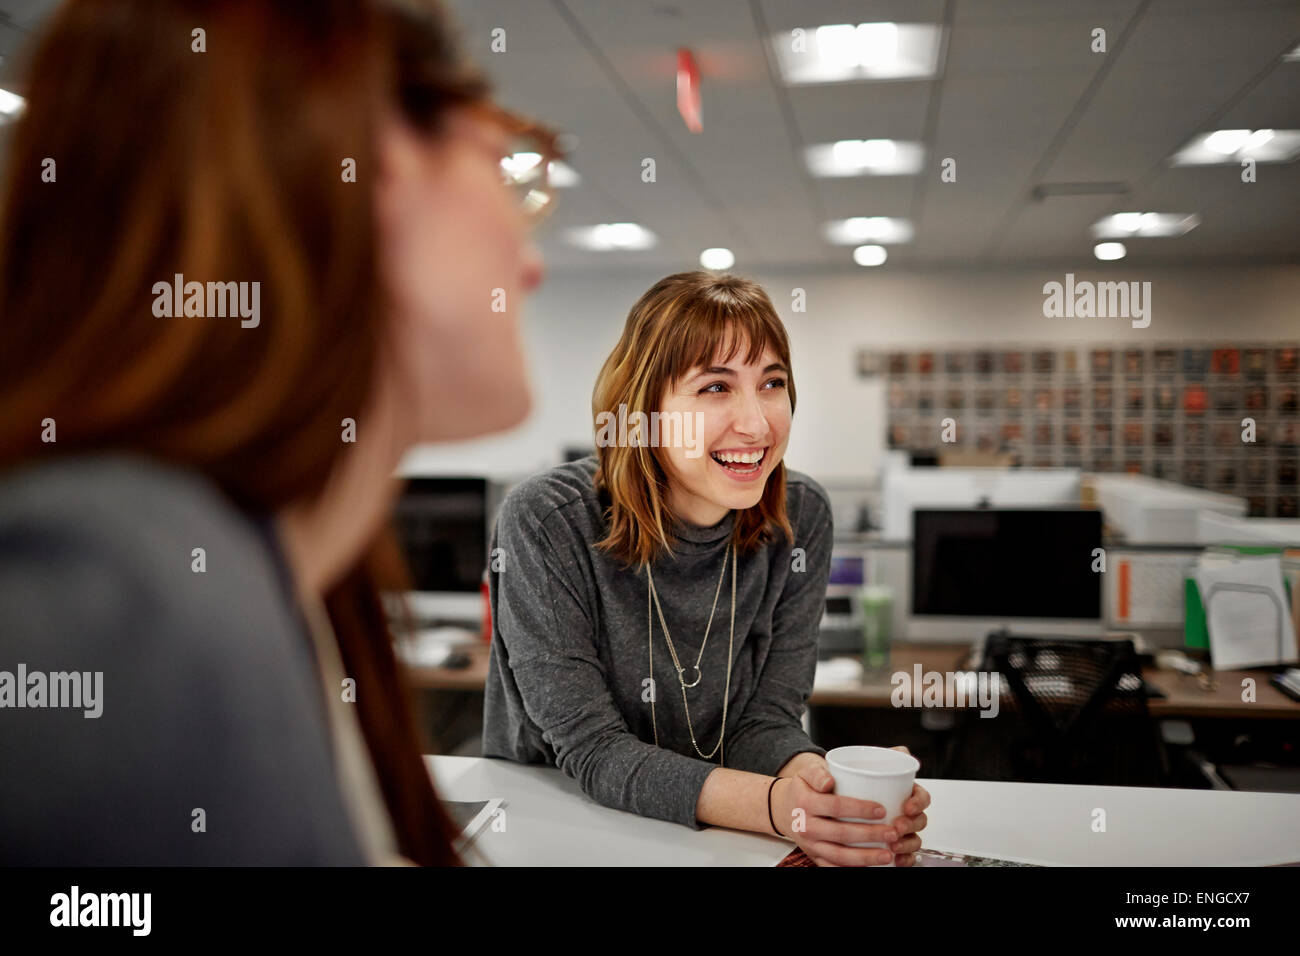 Two women seated in an office talking. - Stock Image